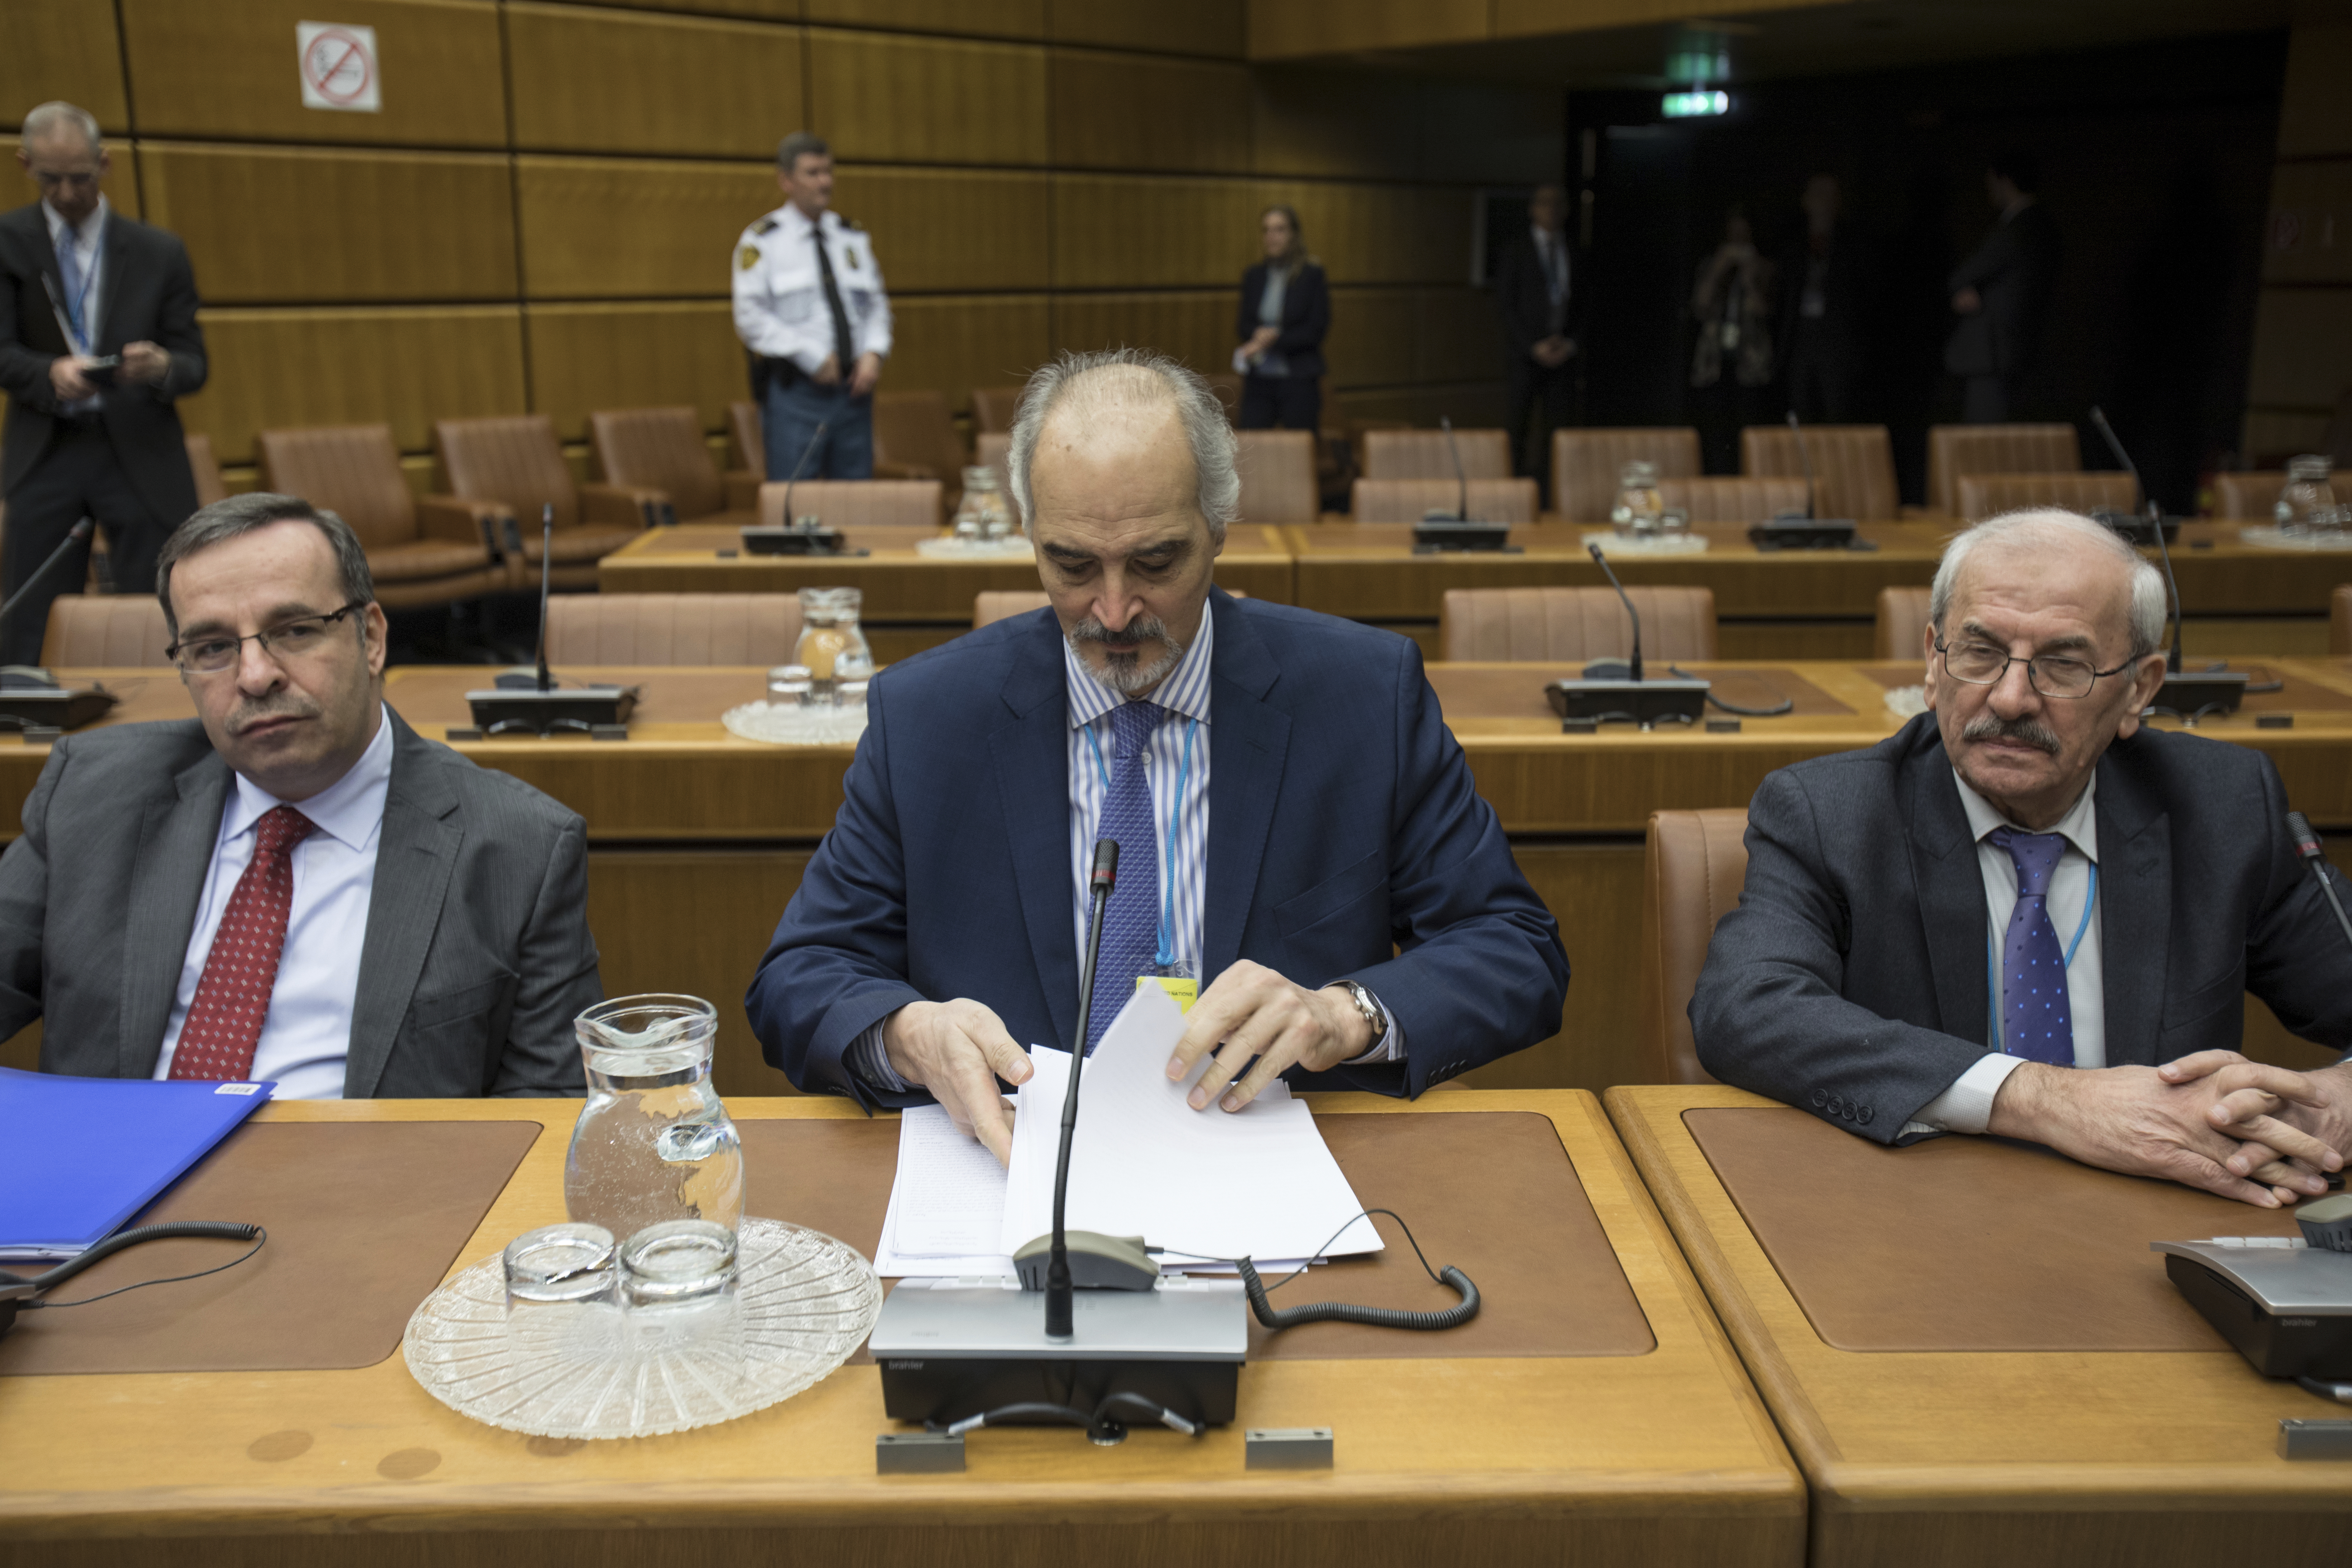 Syrian chief negotiator and Ambassador of the Permanent Representative Mission of Syria to the United Nations, Bashar al-Jaafari, centre, sits sits with members of Syrian delegation before the start of official talks on Syria, in Vienna, Austria, Thursday Jan. 25, 2018.  (Alex Halada/pool via AP)